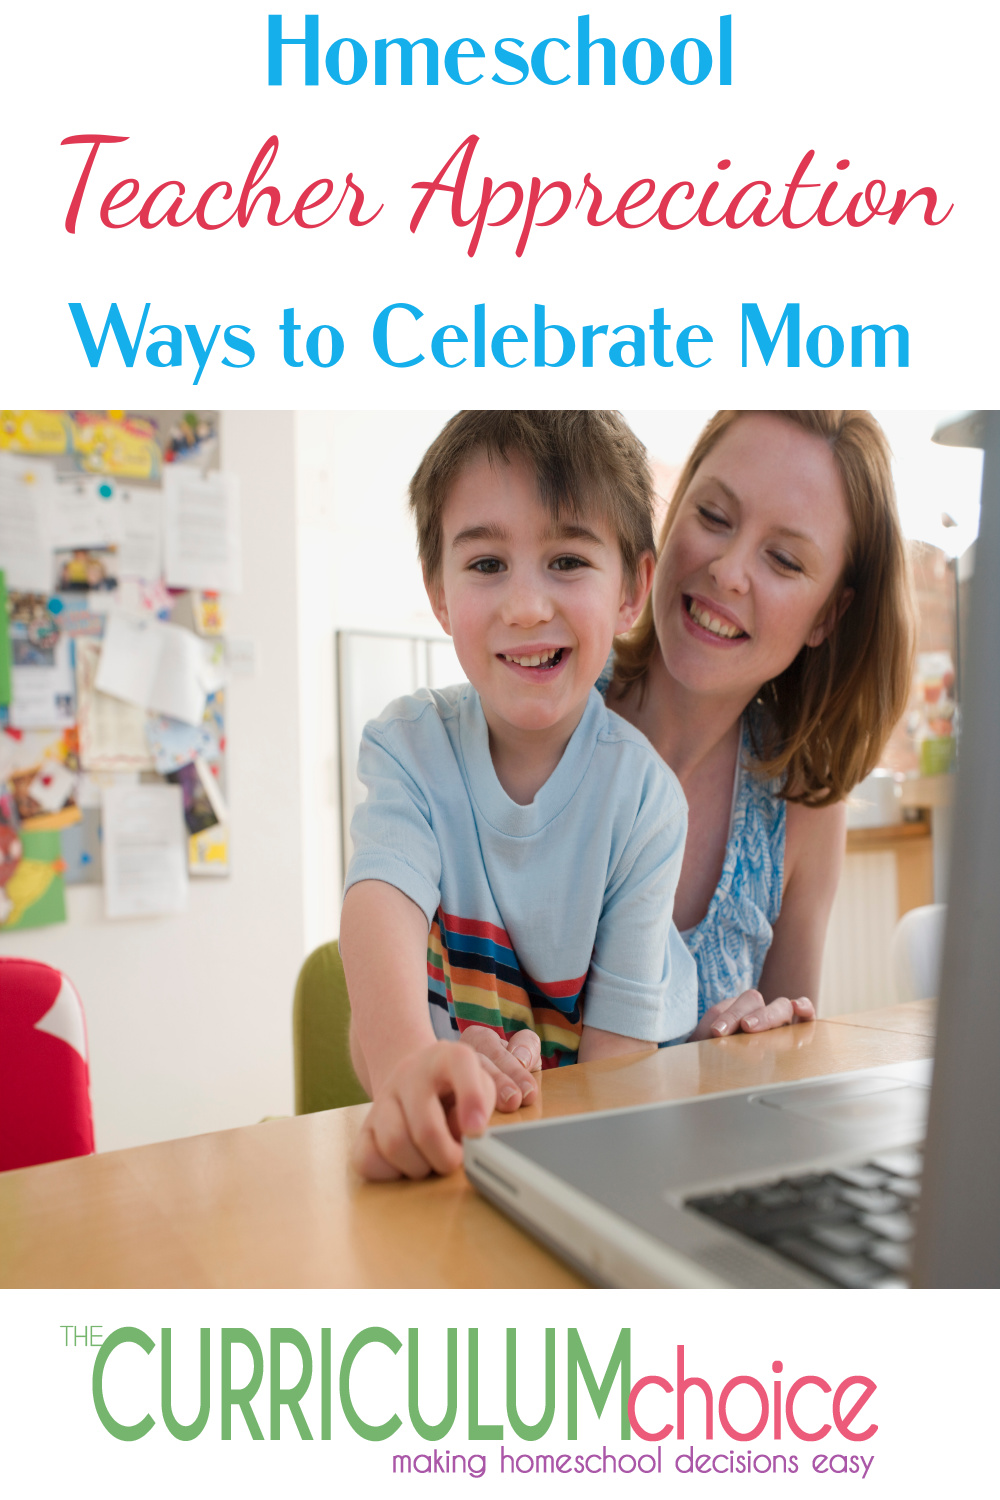 This May let's celebrate Mom not only with Mother's Day but Homeschool Teacher Appreciation too! Here are some ideas for fun and pampering! from The Authors at The Curriculum Choice